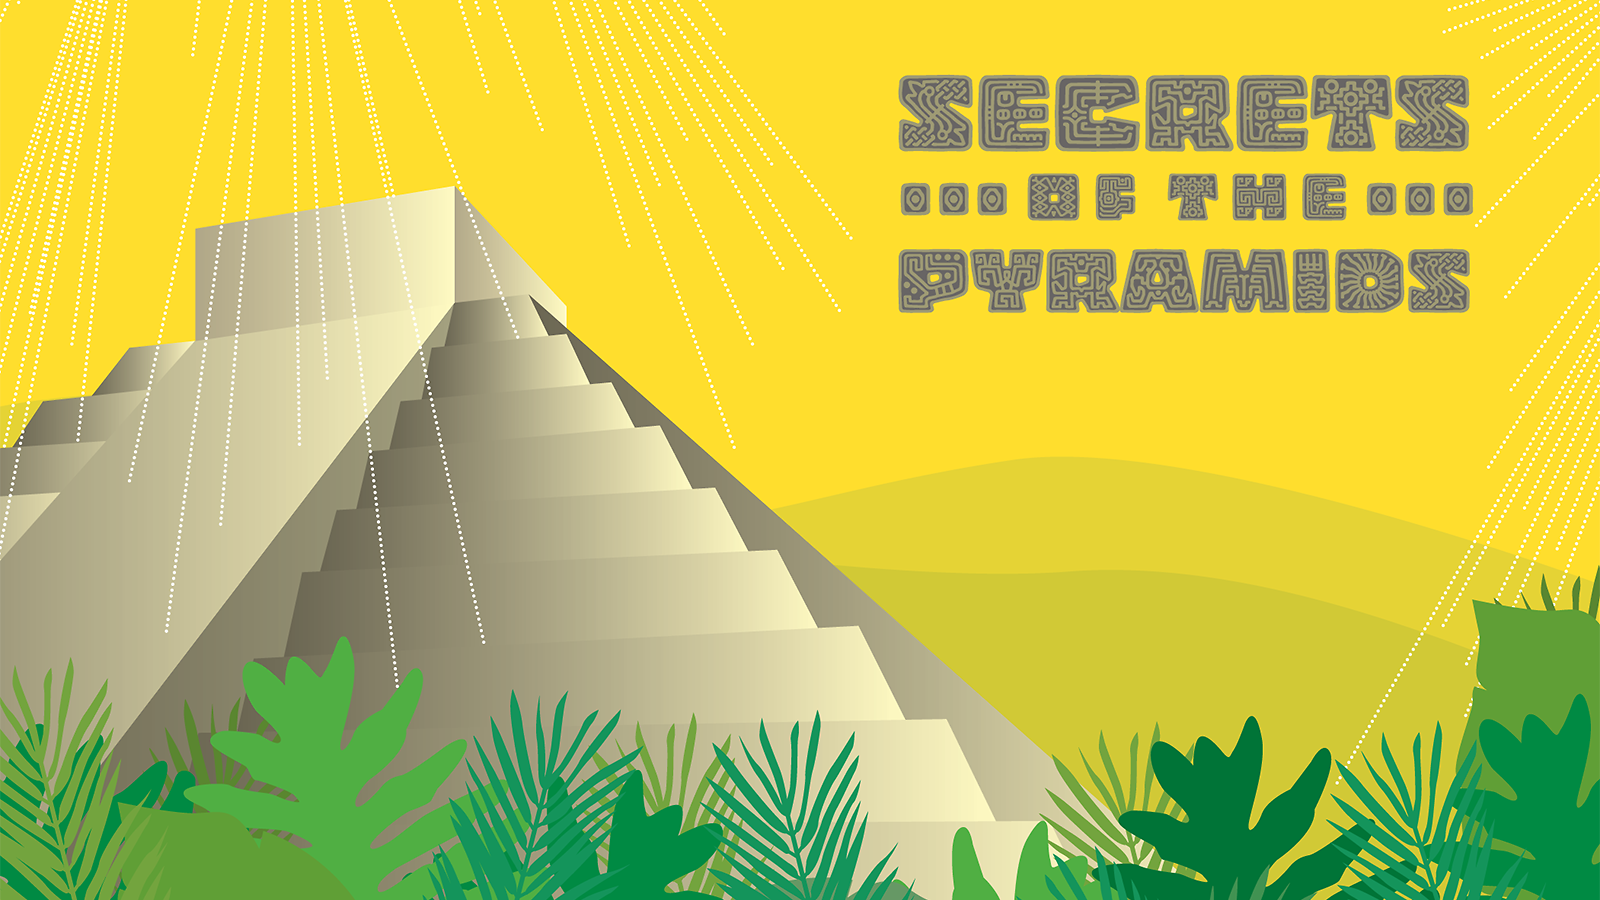 An illustration of a Mayan pyramid